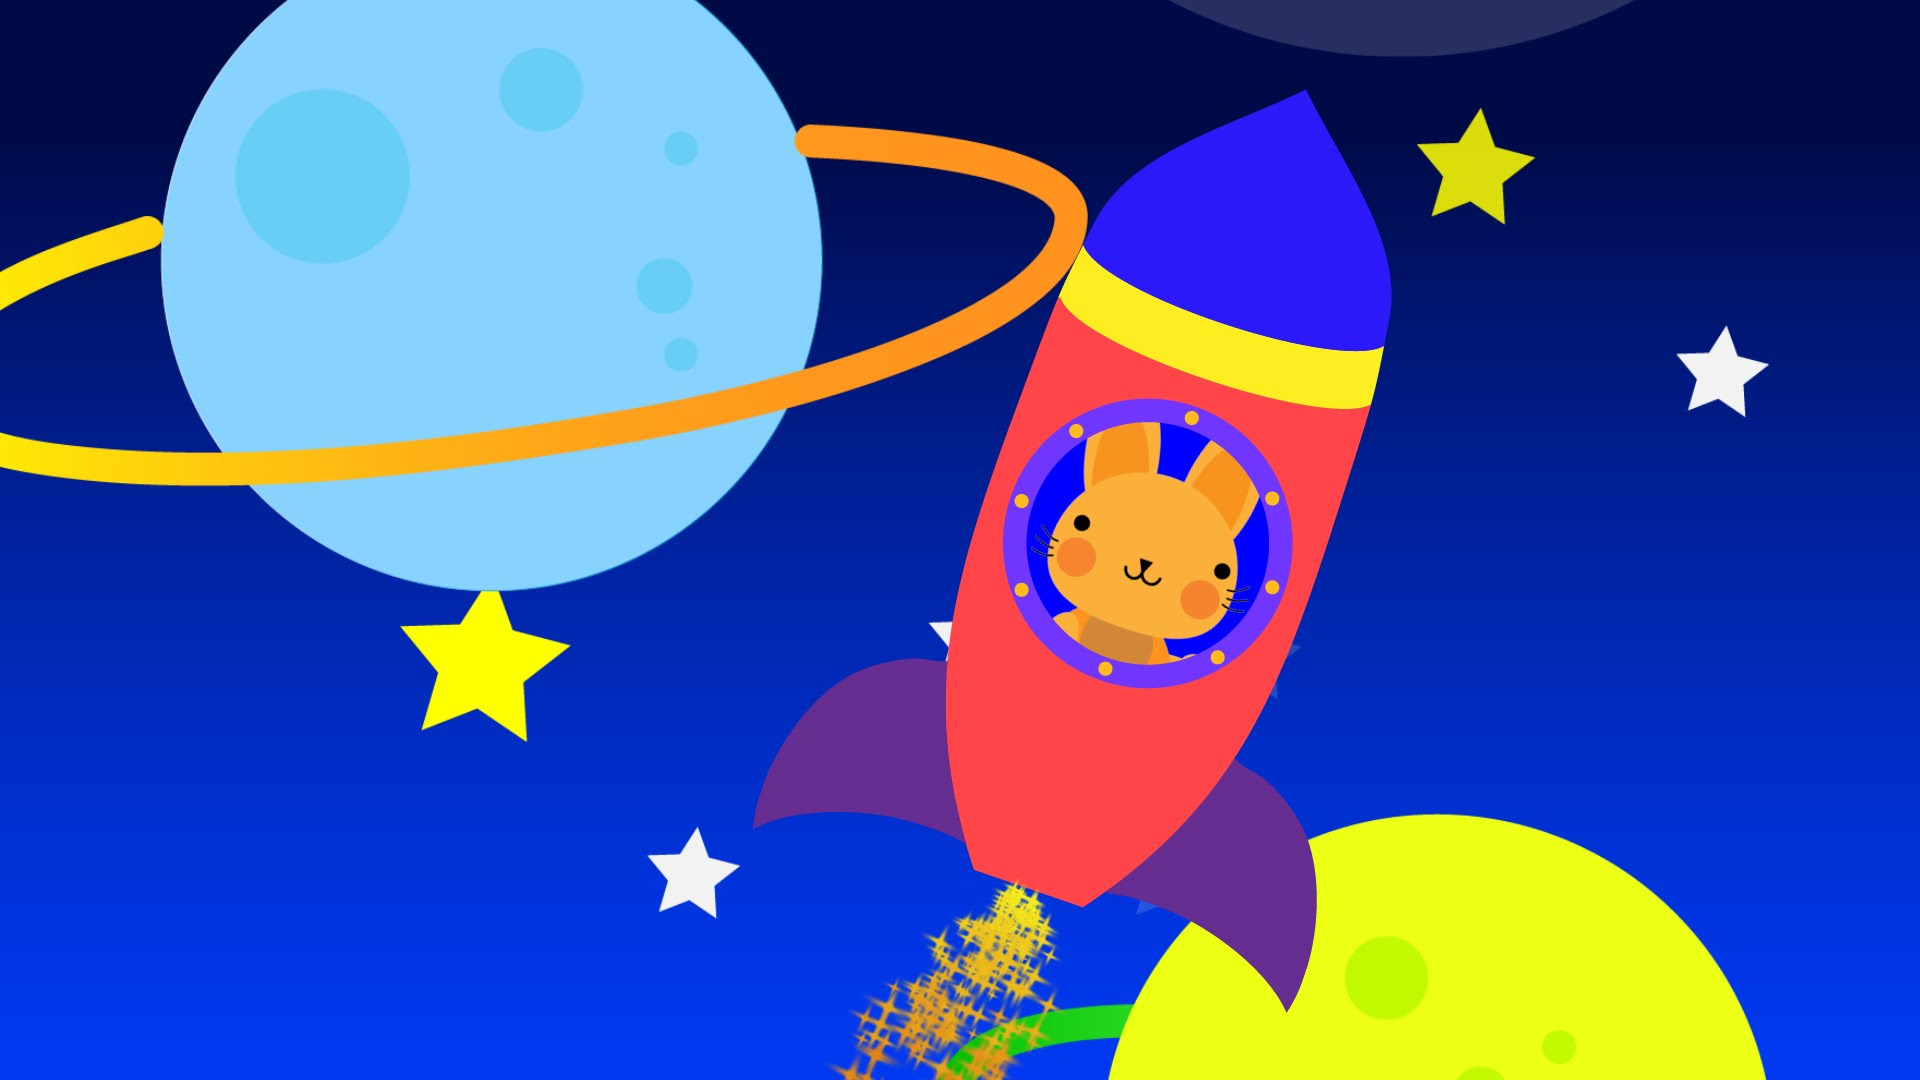 1920x1080 Learn Colors With Cute Bunny In Spaceship Exploring Colorful